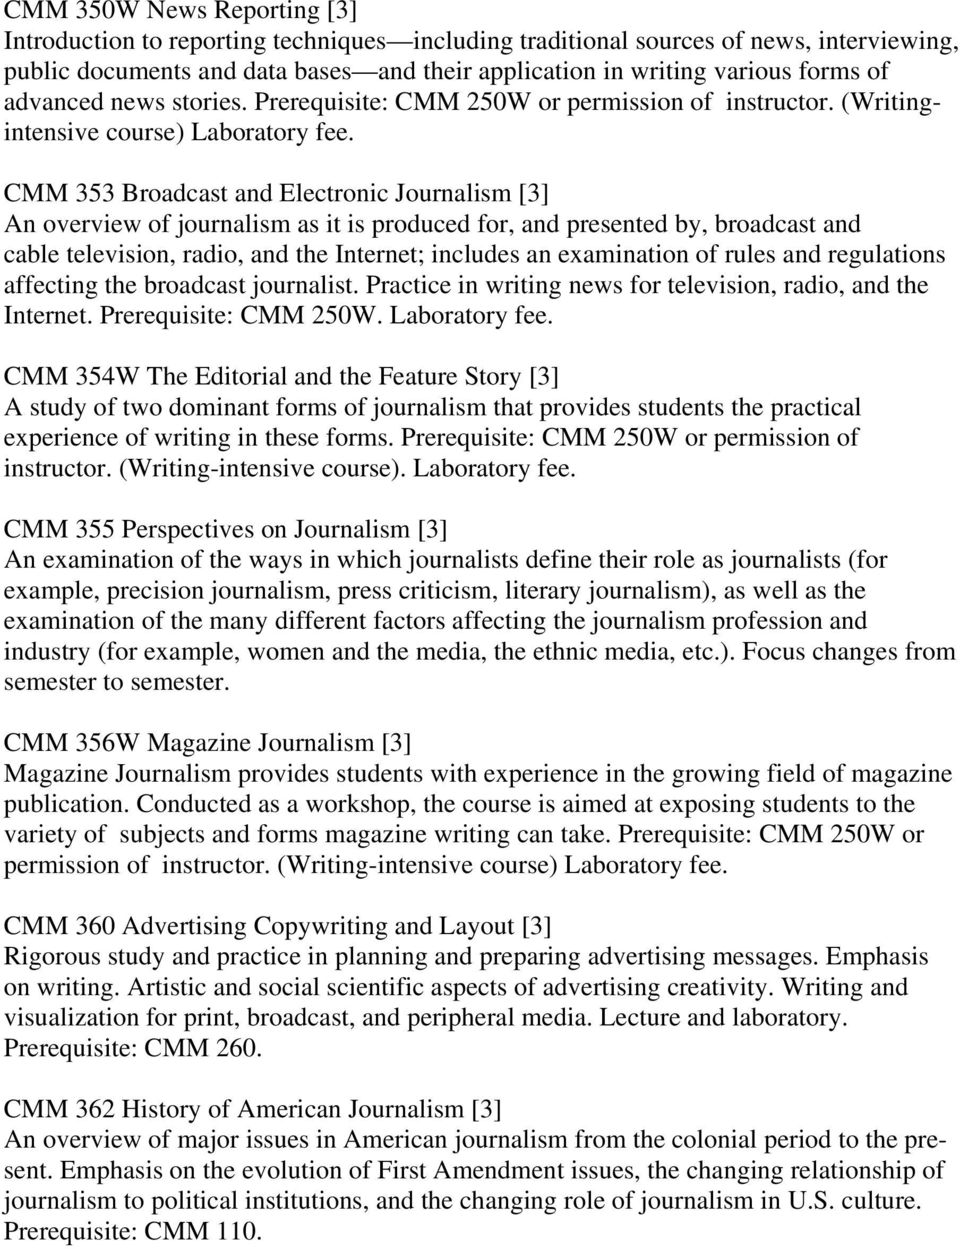 CMM 353 Broadcast and Electronic Journalism [3] An overview of journalism as it is produced for, and presented by, broadcast and cable television, radio, and the Internet; includes an examination of